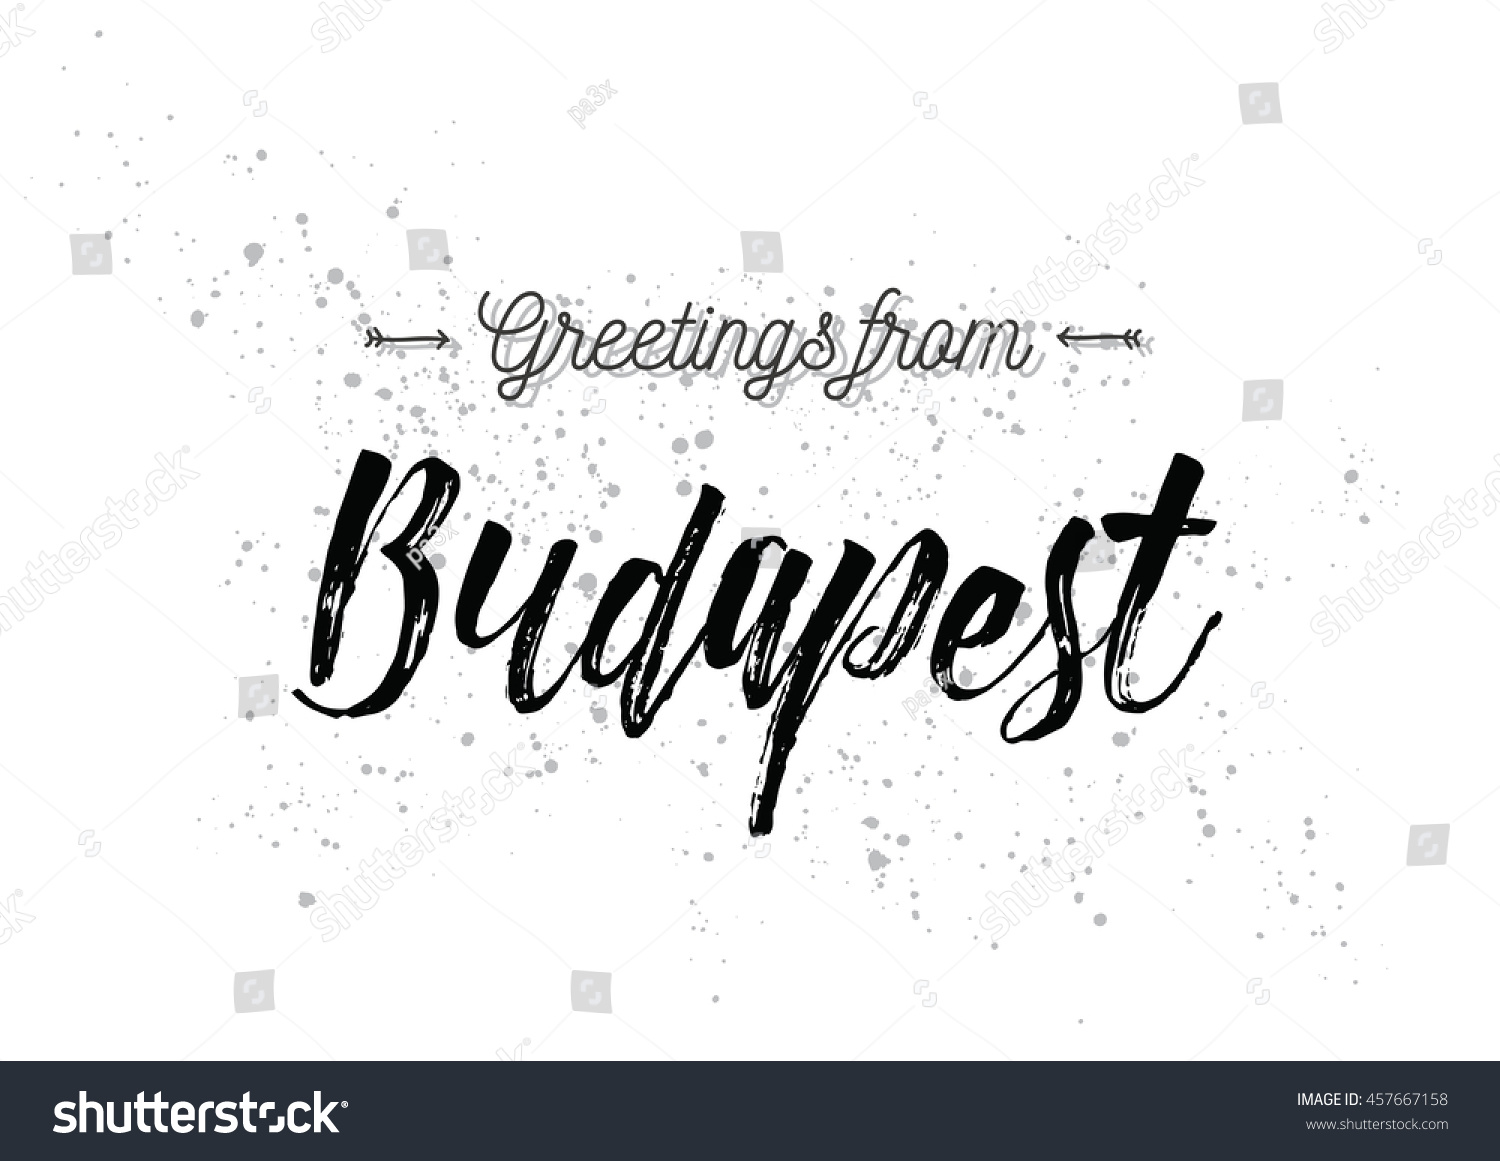 Greetings Budapest Hungary Greeting Card Typography Stock Vector